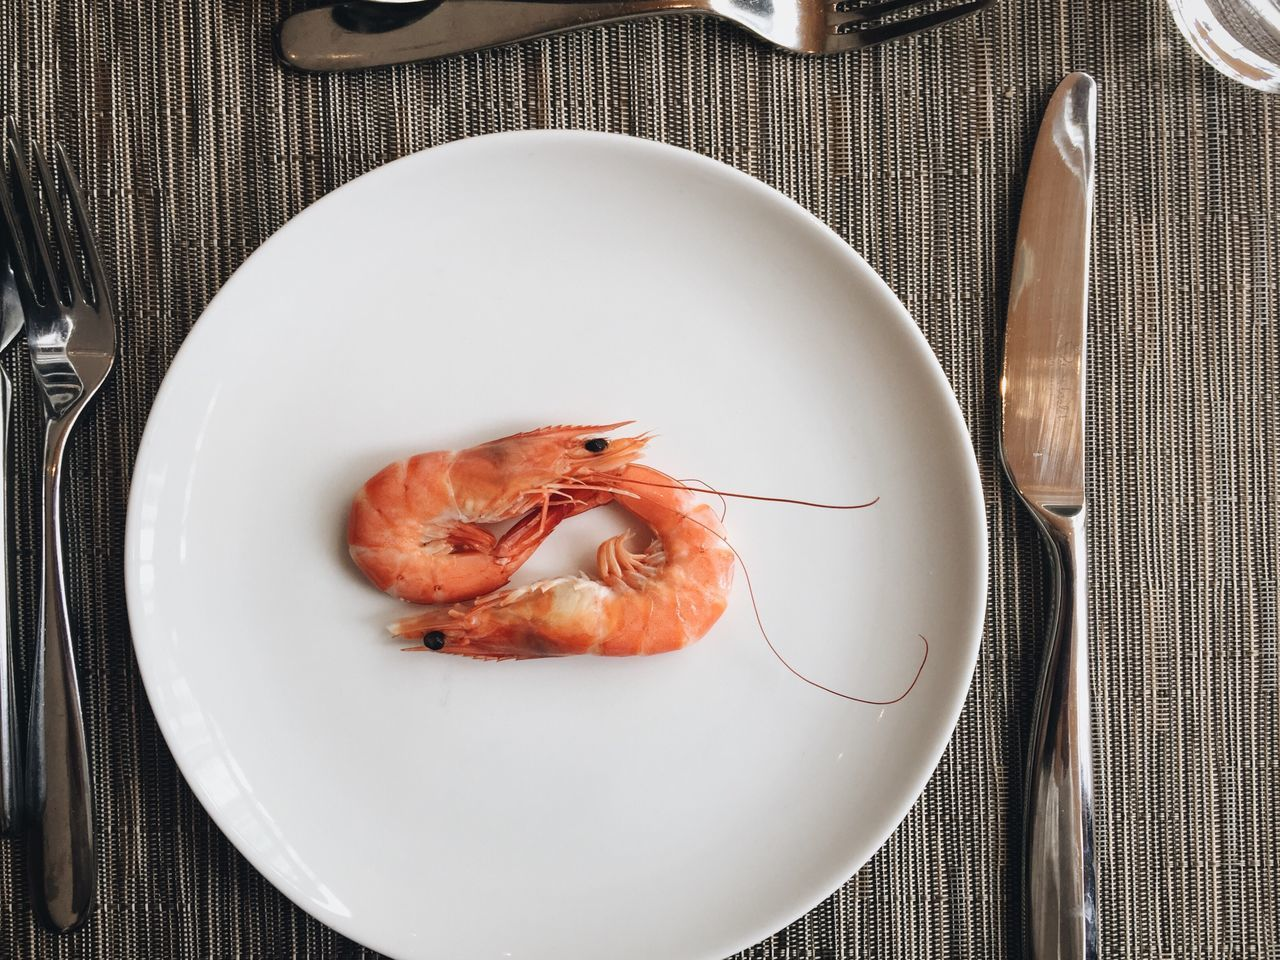 my lunch 😂 Plate Food Food And Drink Freshness Seafood High Angle View Healthy Eating Indoors  No People Tablecloth Ready-to-eat Close-up Day Shrimps Lunch IPhoneography Iphoneonly